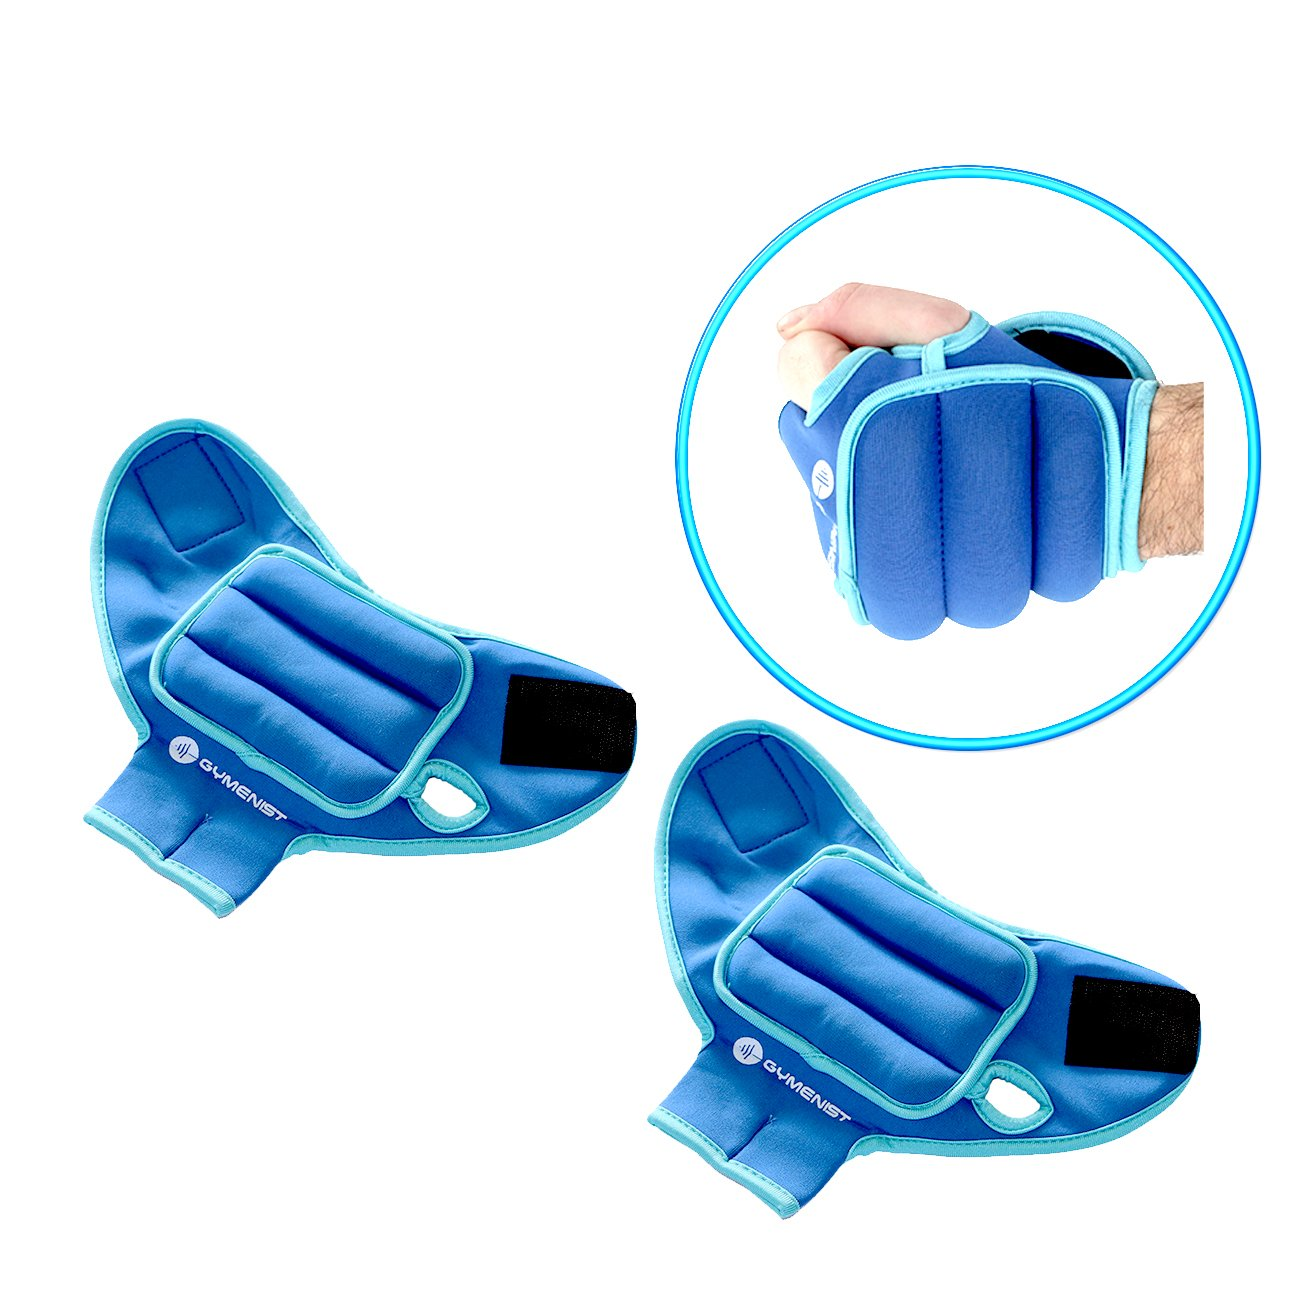 Gymenist Pair of Glove Wrist Weights With Holes For Finger And Thumb (1 LB) by GYMENIST